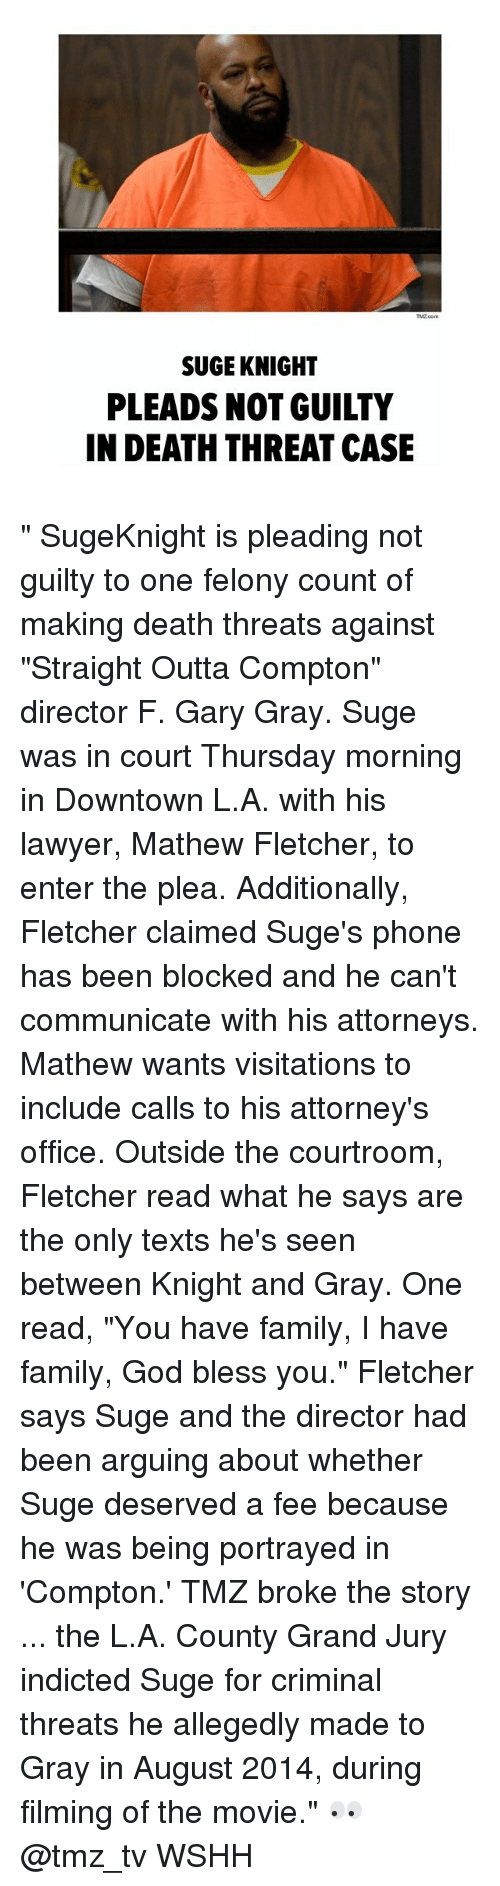 """threating: TMZ com  SUGE KNIGHT  PLEADS NOT GUILTY  IN DEATH THREAT CASE """" SugeKnight is pleading not guilty to one felony count of making death threats against """"Straight Outta Compton"""" director F. Gary Gray. Suge was in court Thursday morning in Downtown L.A. with his lawyer, Mathew Fletcher, to enter the plea. Additionally, Fletcher claimed Suge's phone has been blocked and he can't communicate with his attorneys. Mathew wants visitations to include calls to his attorney's office. Outside the courtroom, Fletcher read what he says are the only texts he's seen between Knight and Gray. One read, """"You have family, I have family, God bless you."""" Fletcher says Suge and the director had been arguing about whether Suge deserved a fee because he was being portrayed in 'Compton.' TMZ broke the story ... the L.A. County Grand Jury indicted Suge for criminal threats he allegedly made to Gray in August 2014, during filming of the movie."""" 👀 @tmz_tv WSHH"""